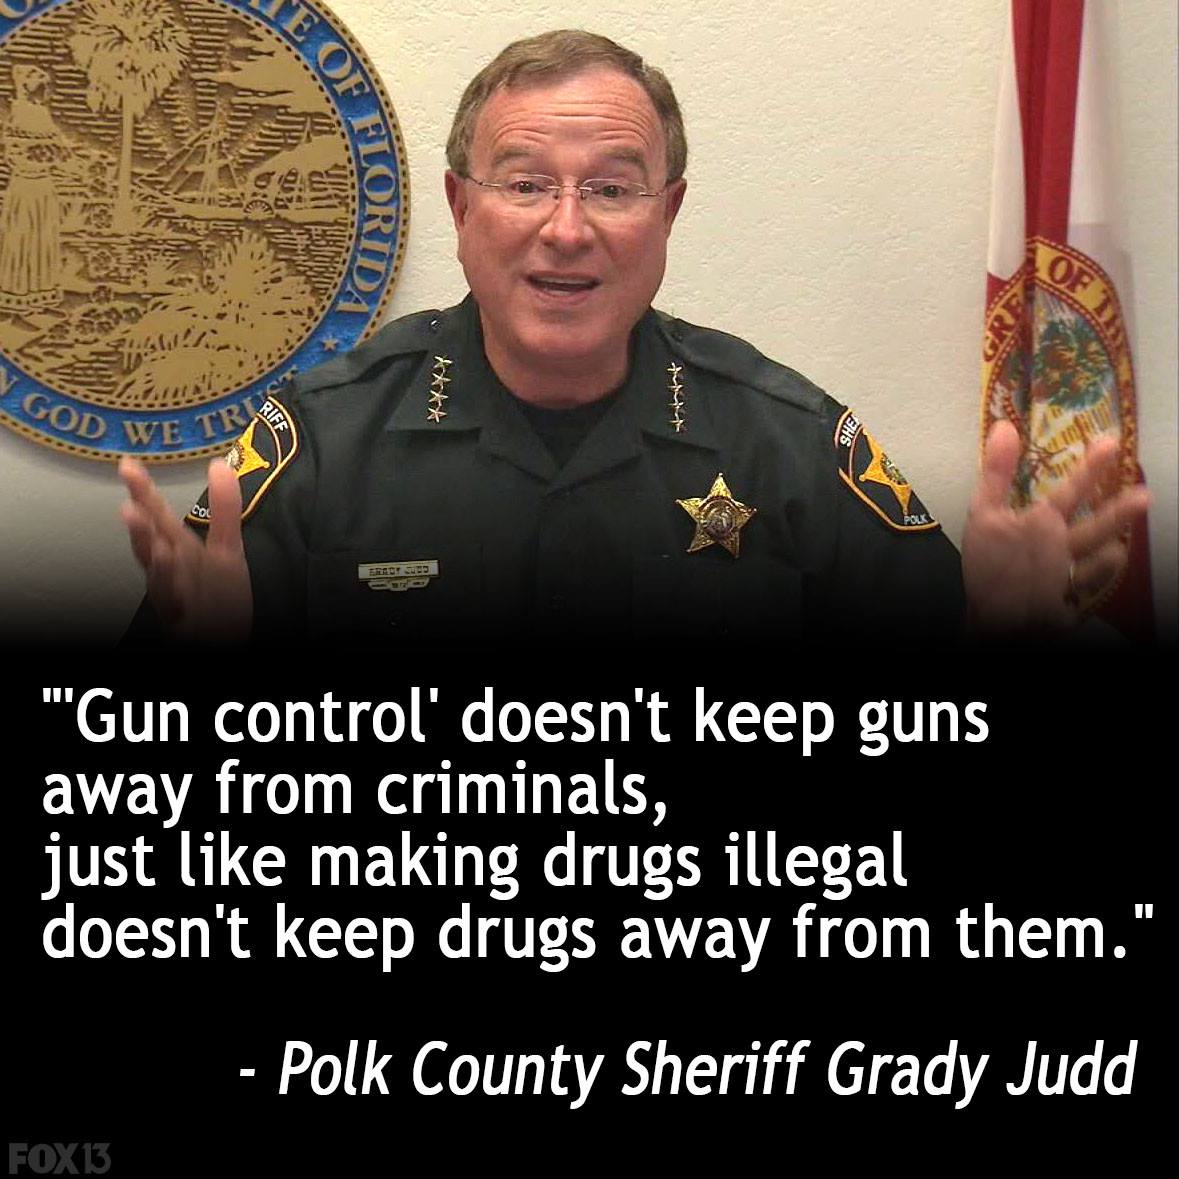 gun-control-doesnt-keep-guns-away-from-criminals-just-like-making-drugs-illegal-doesnt-keep-drugs-away-from-them